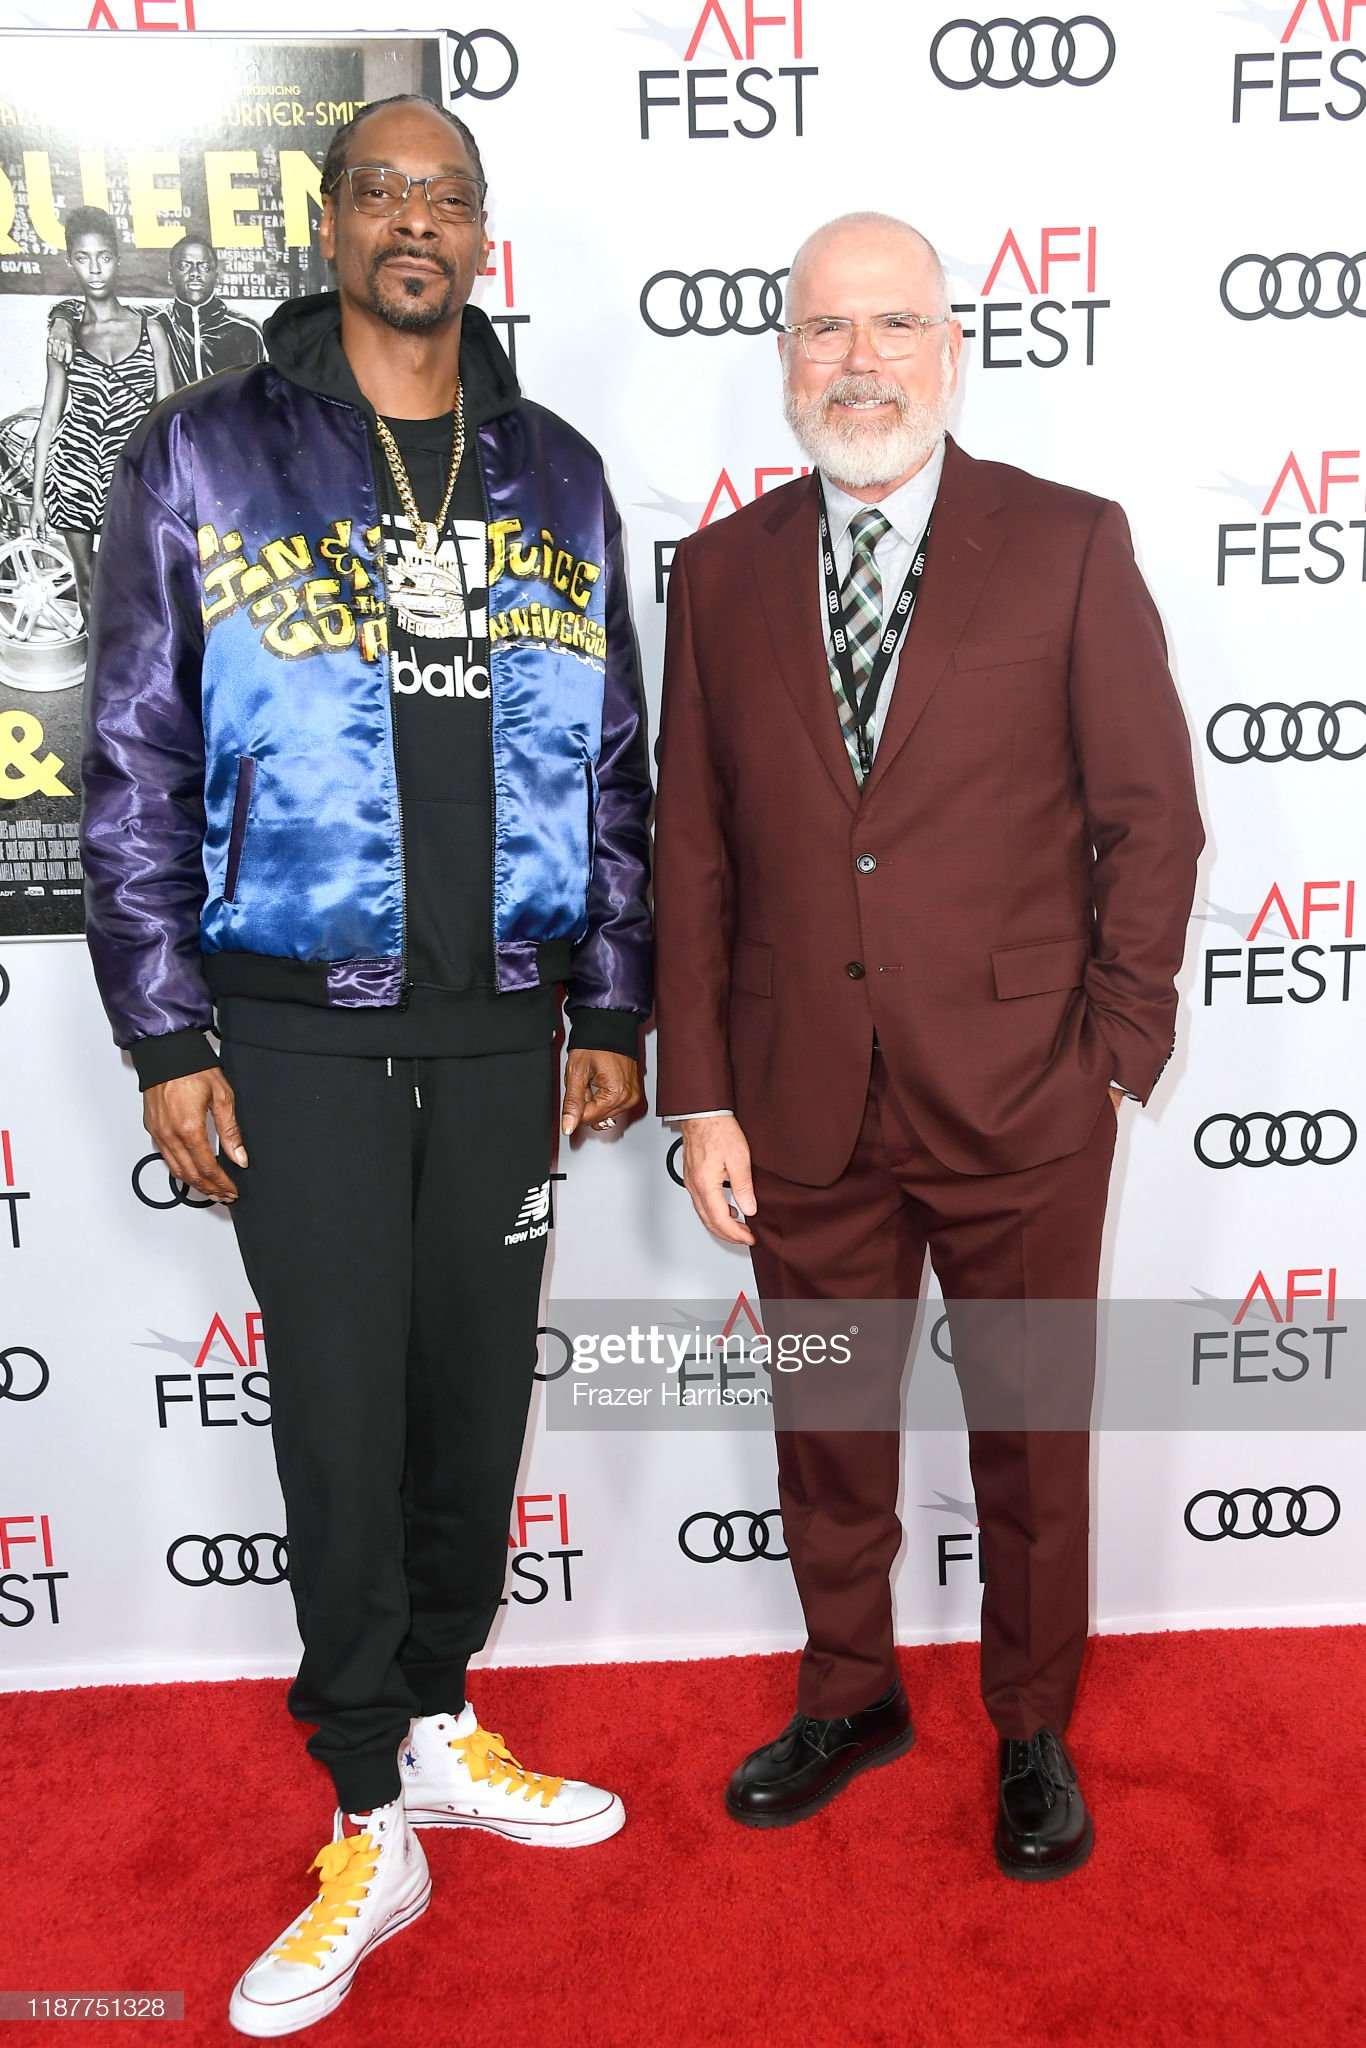 ¿Cuánto mide Snoop Dogg? - Altura - Real height Snoop-dogg-and-afi-festivals-director-michael-lumpkin-attend-the-picture-id1187751328?s=2048x2048